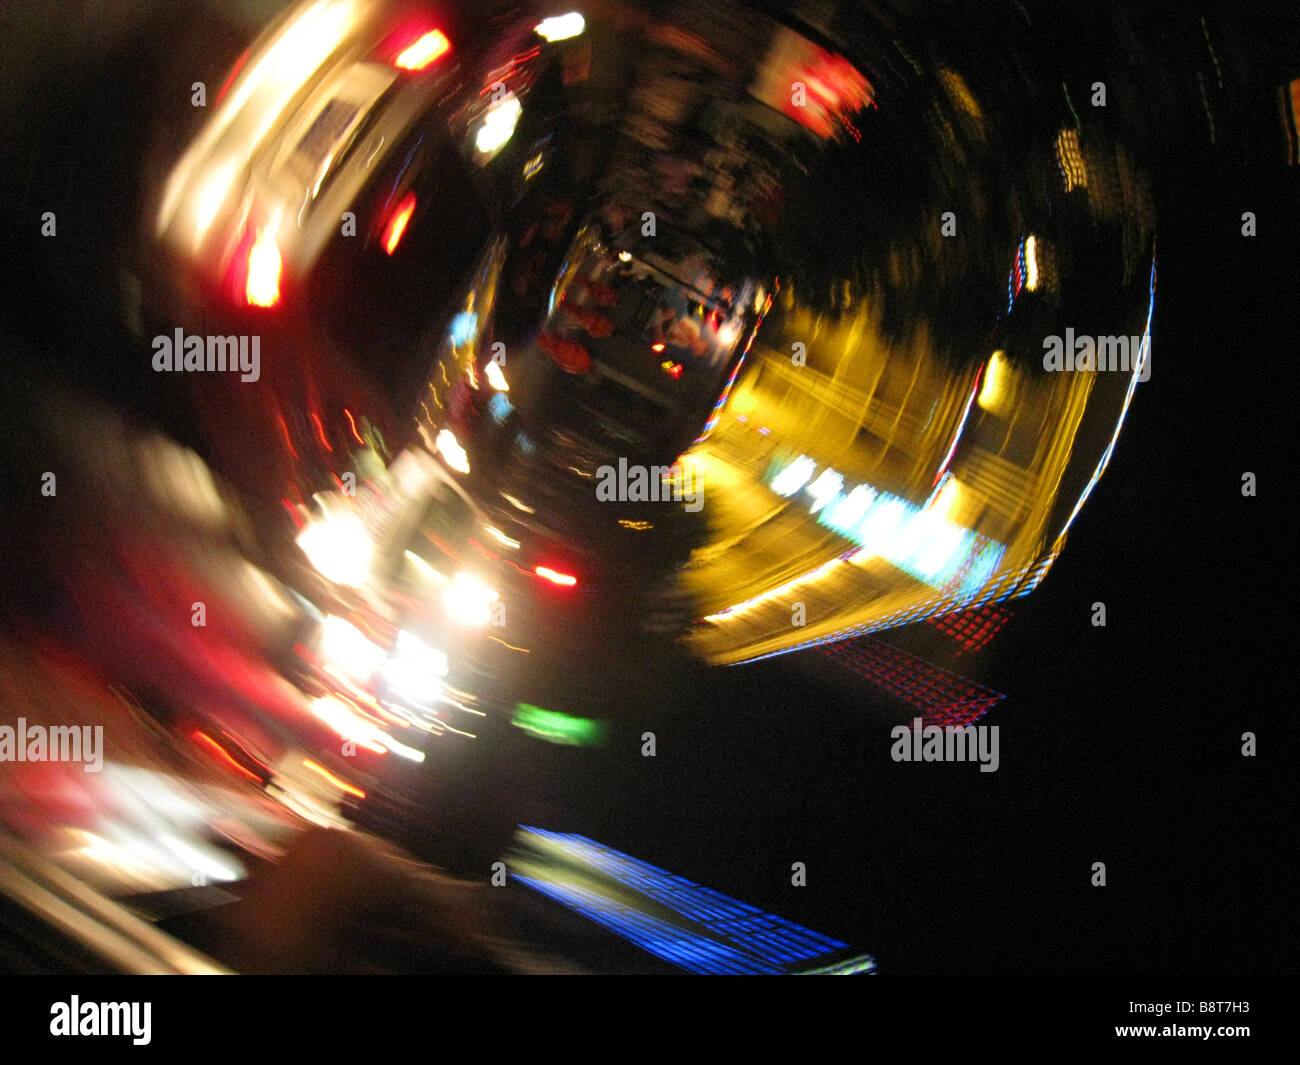 Whirling neon lights - Stock Image